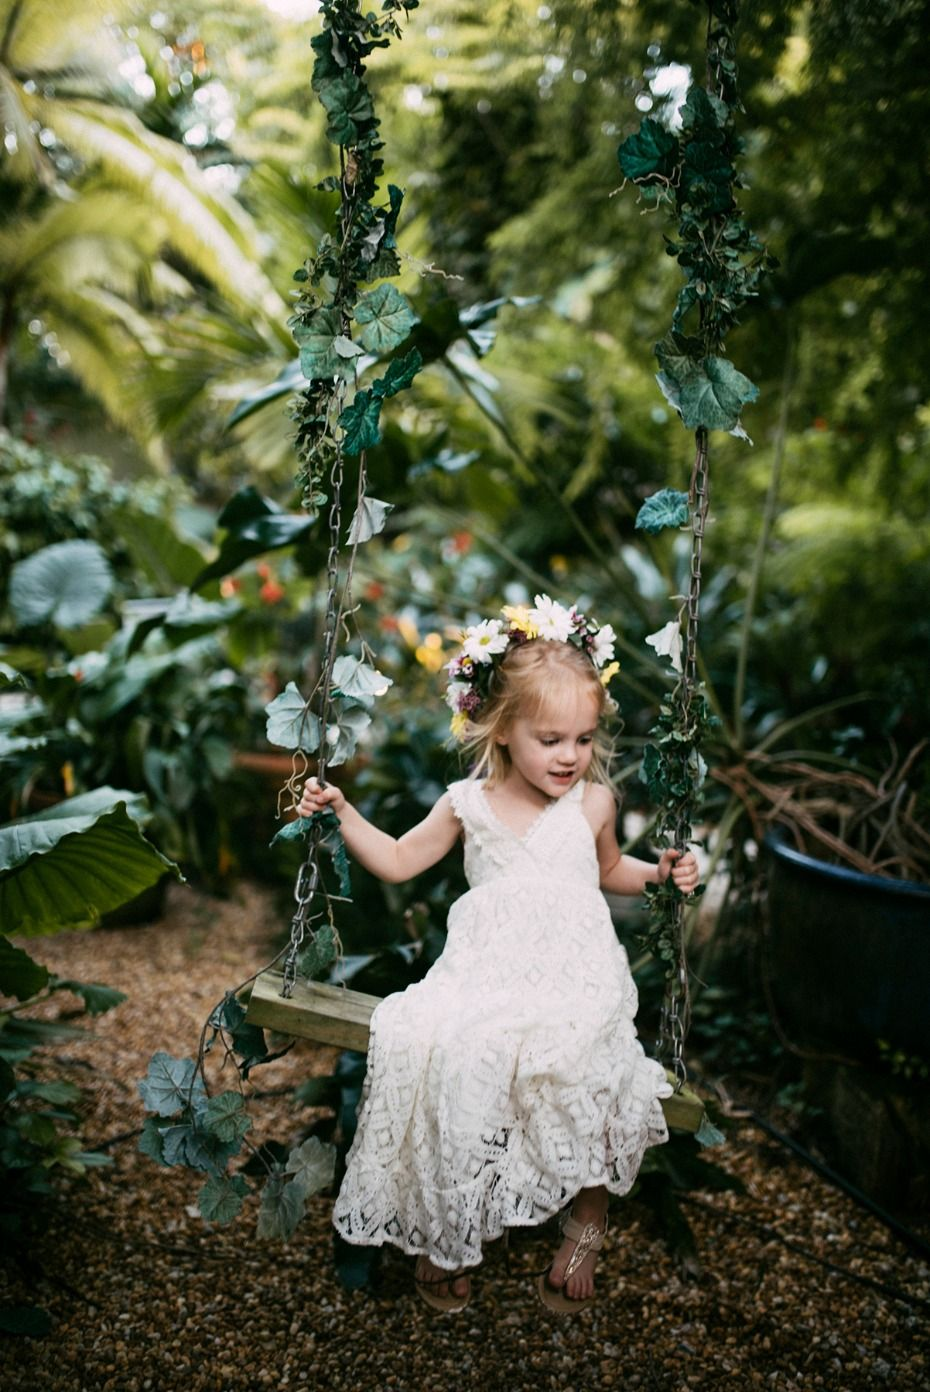 33e79b7b0 We Seriously Want To Steal This Bride's Amazing Style | Flower Girls ...